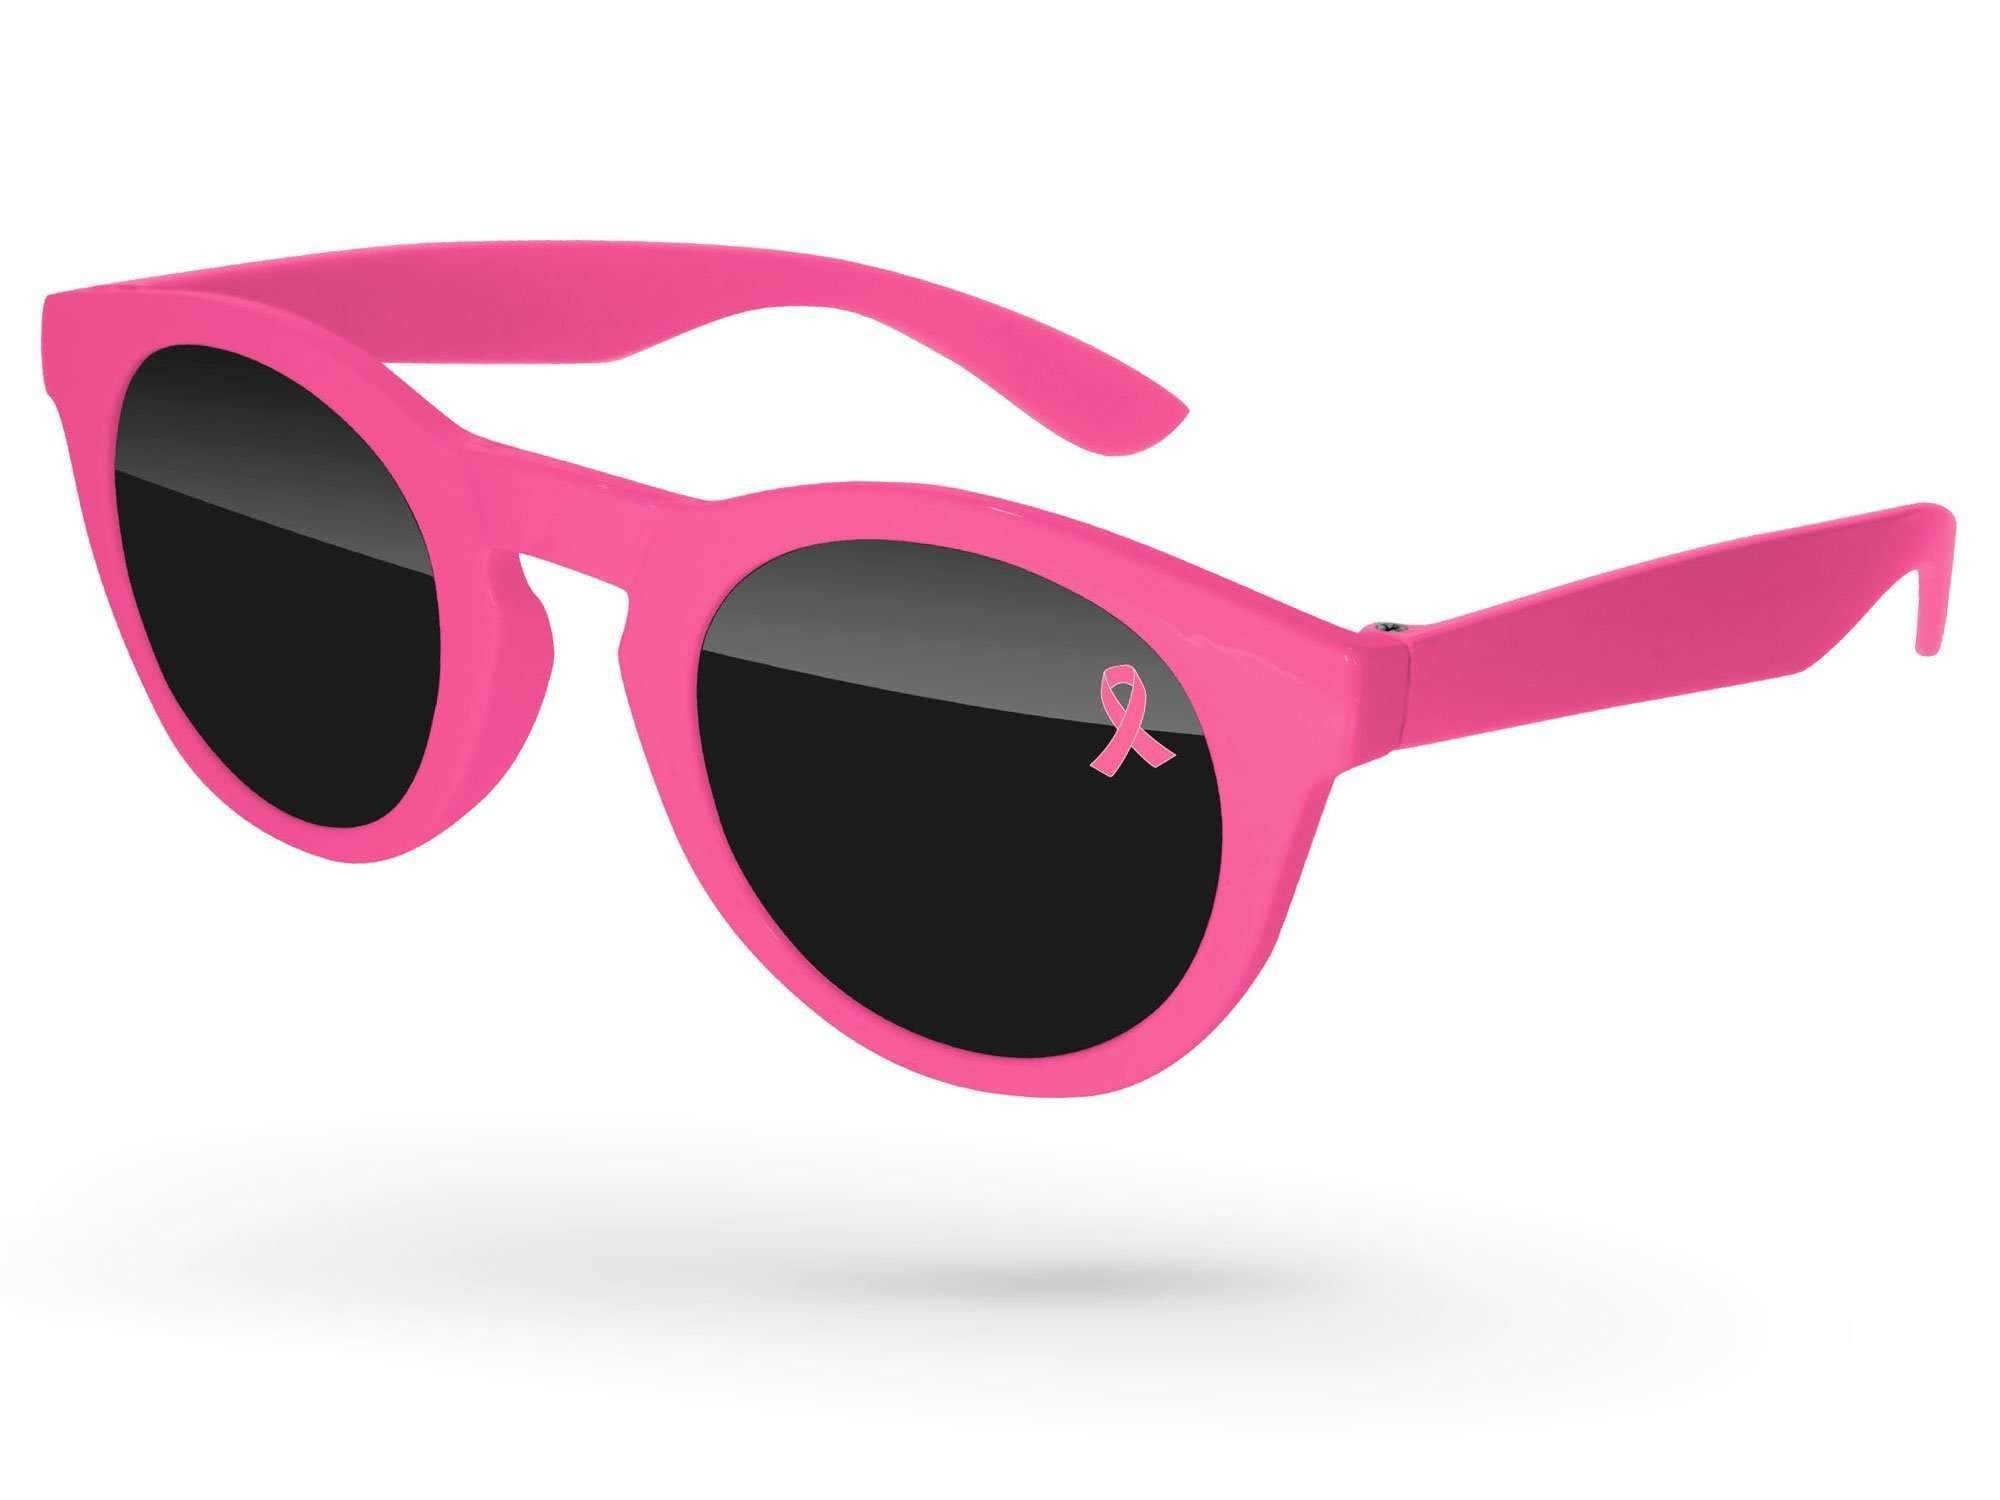 Breast Cancer Awareness Andy Promotional Sunglasses w/ 1-color lens imprint